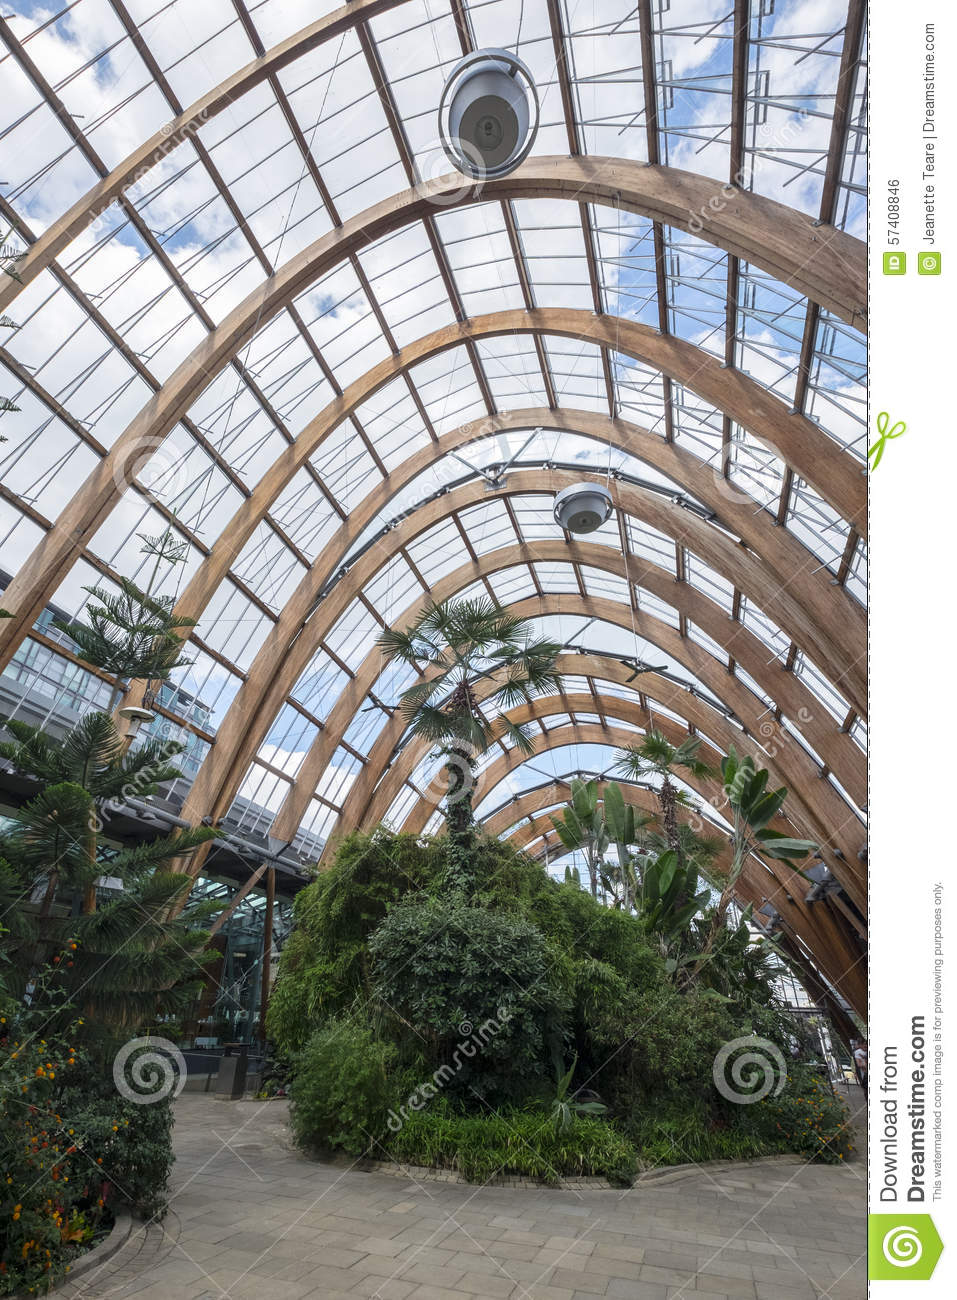 sheffield winter gardens editorial photo image 57408846